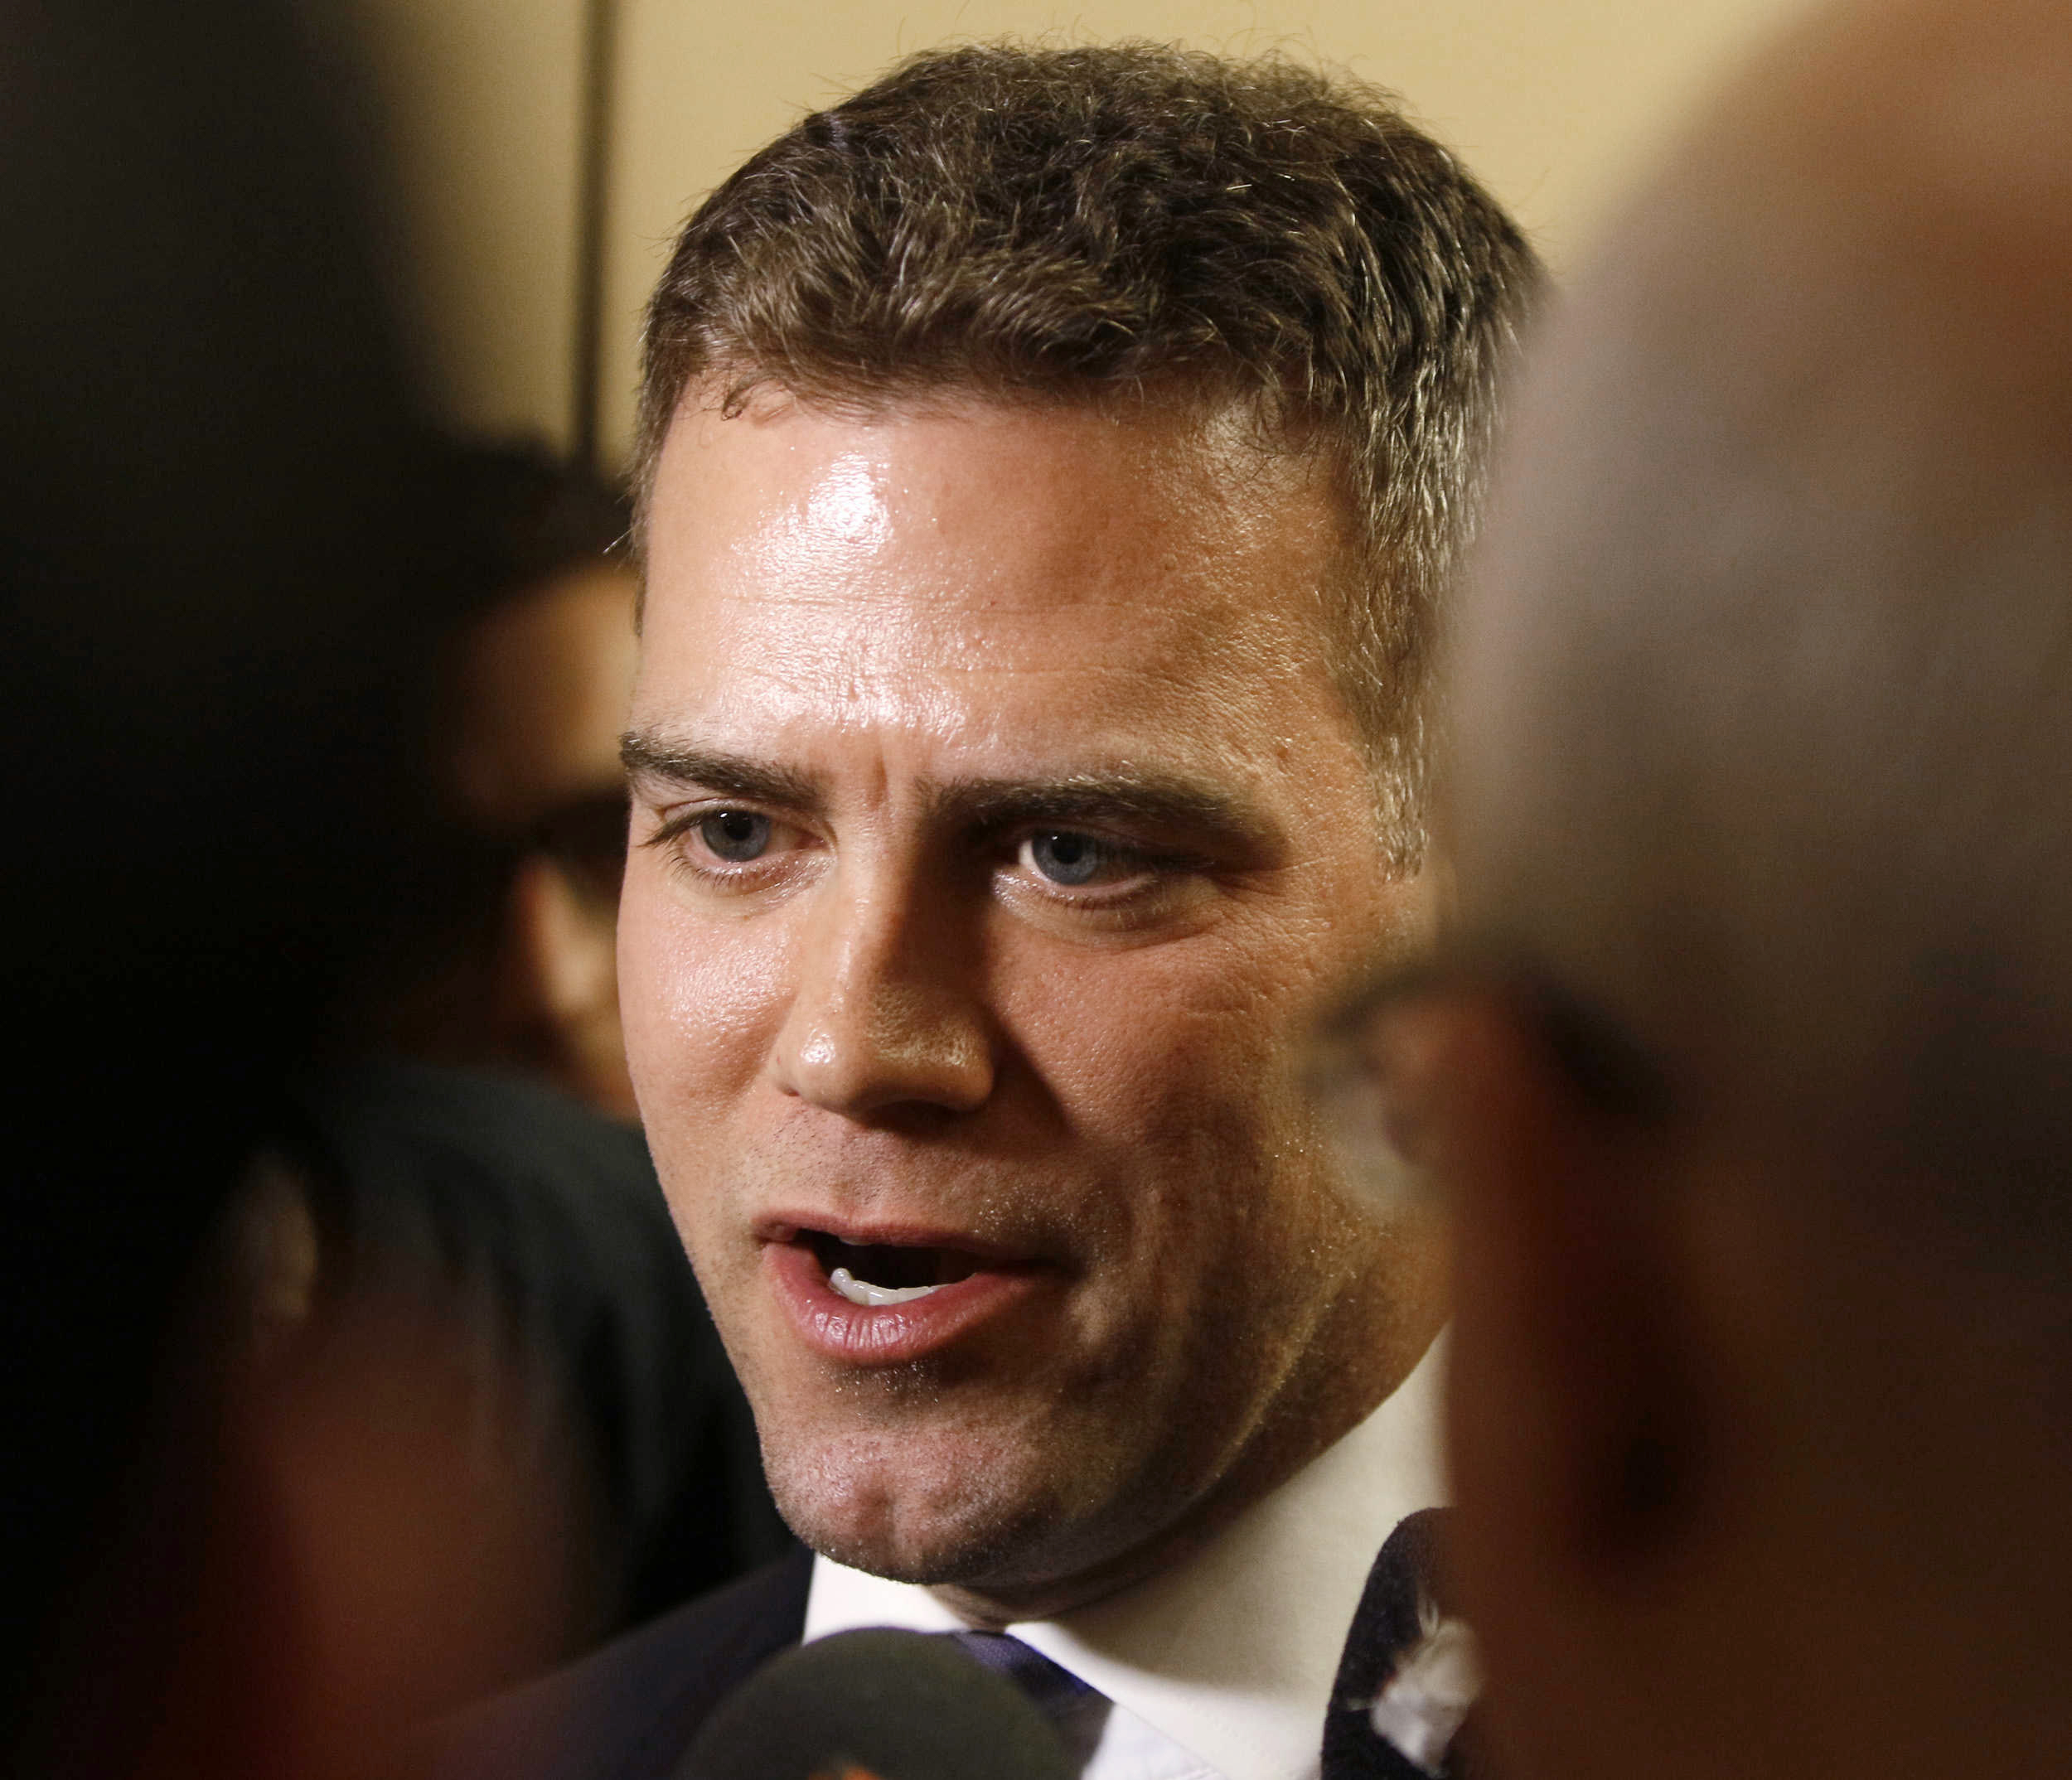 Theo Epstein, Chicago Cubs president of baseball operations, speaks to reporters during the baseball team's convention, Friday, Jan. 15, 2016, in Chicago. (Daniel White/Daily Herald via AP)